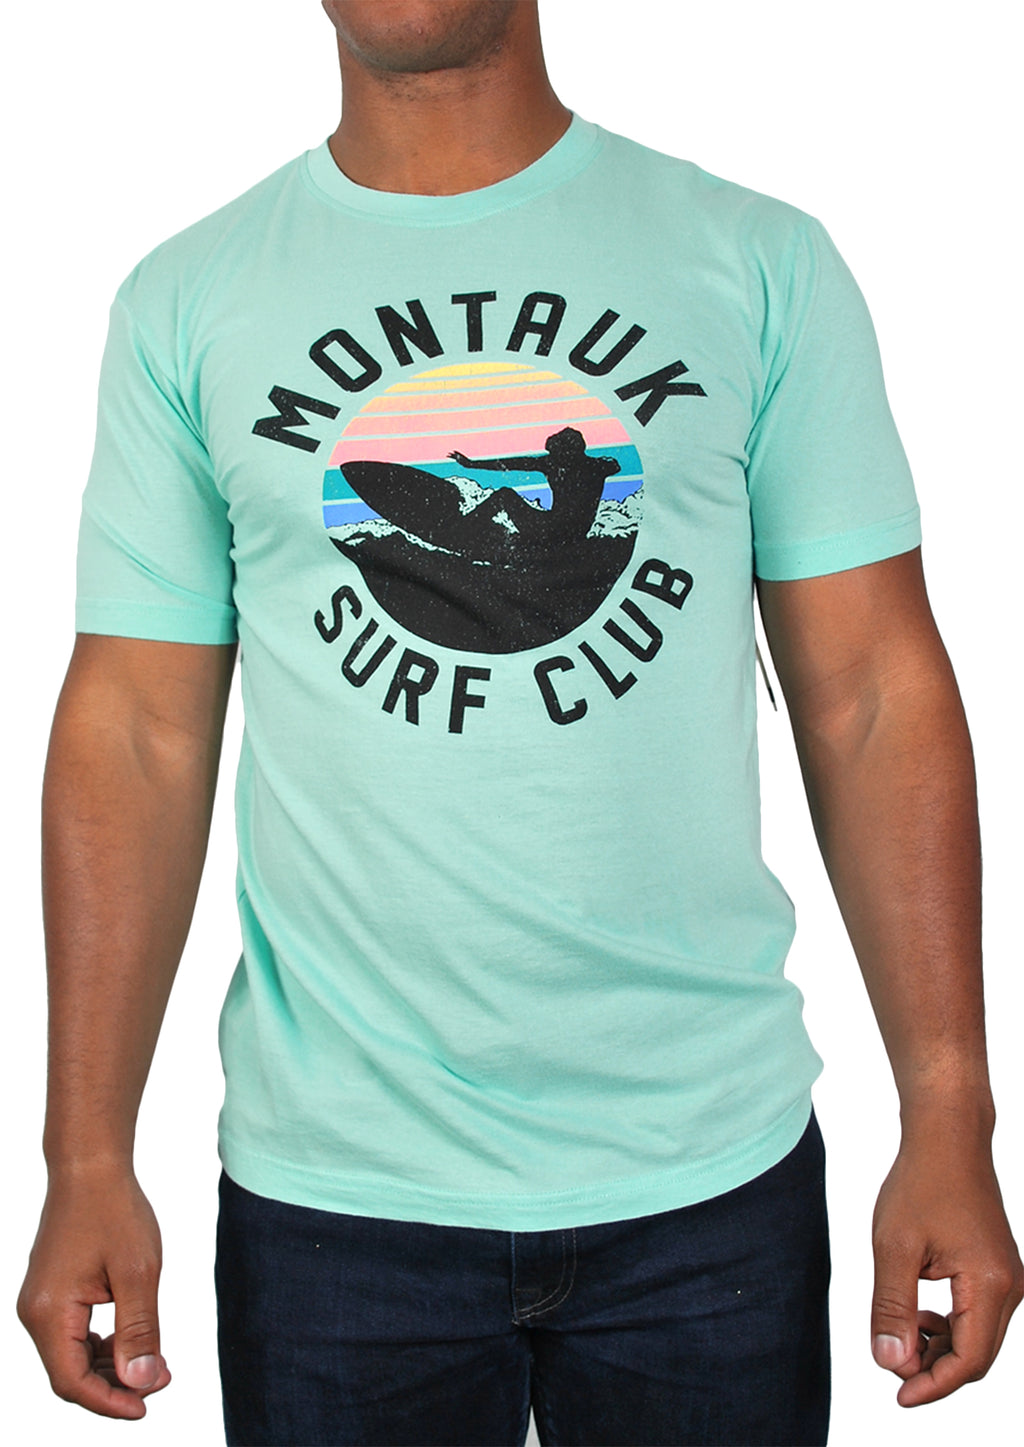 Montauk Surf Club Tee (Mint)